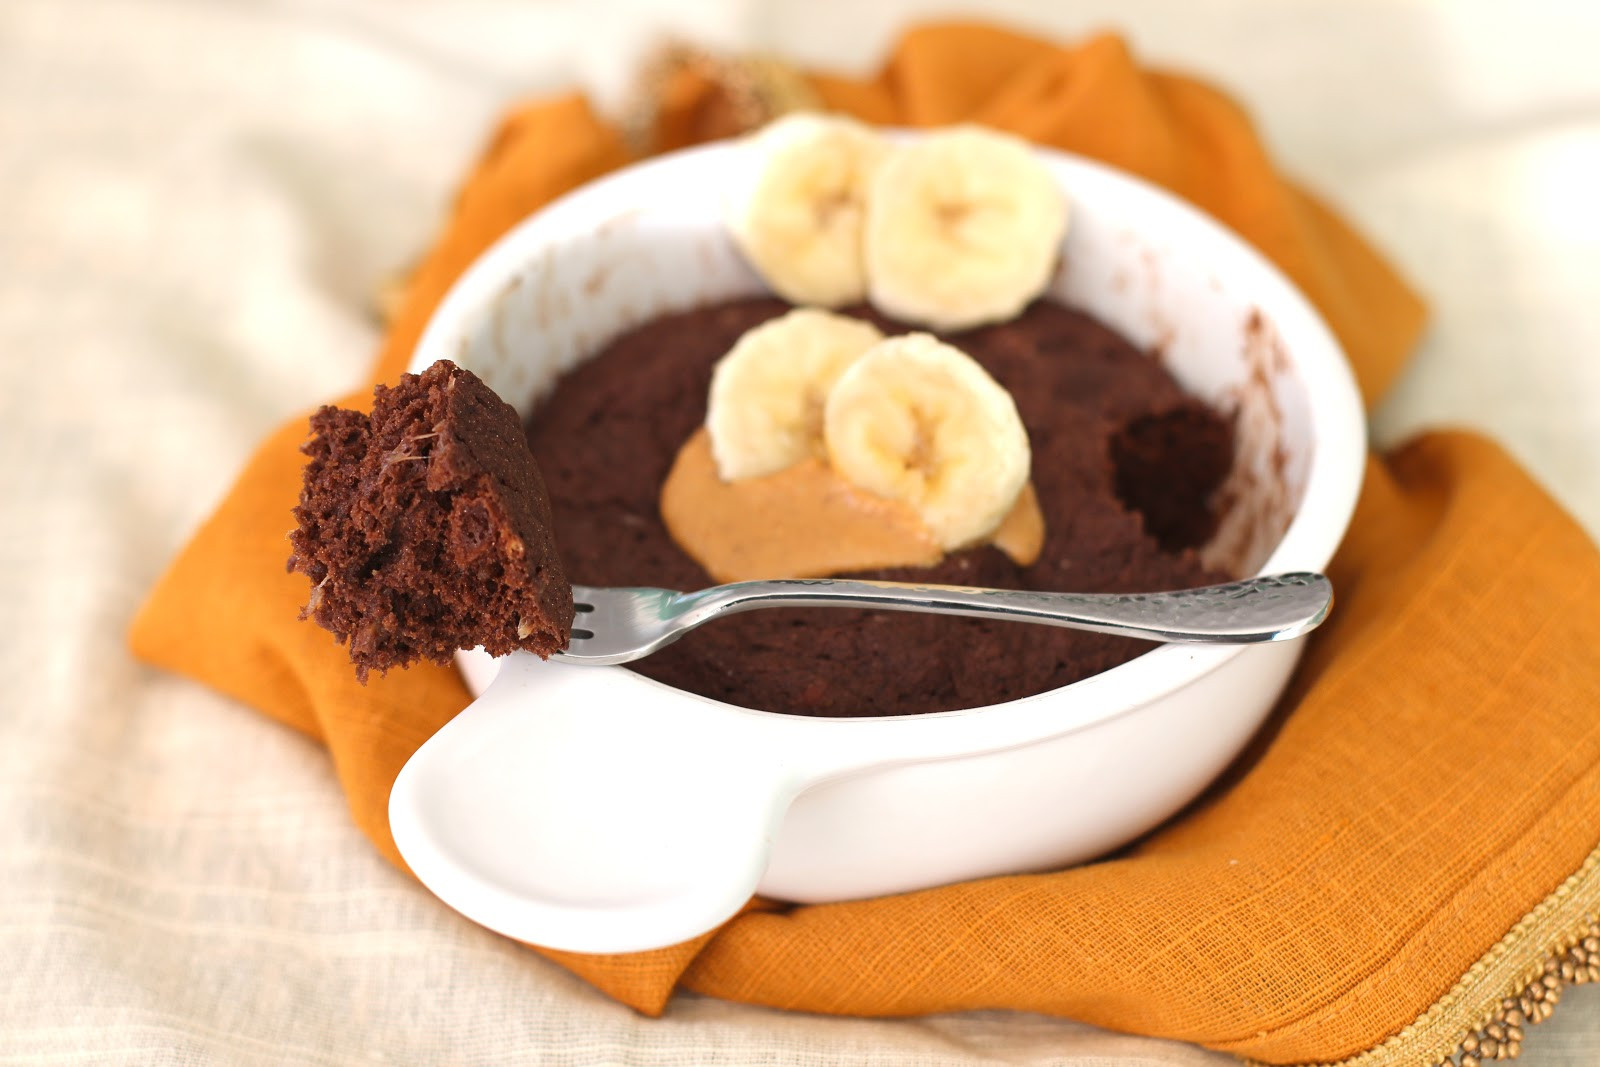 Healthy Banana Desserts  Healthy Single Serving Chocolate Peanut Butter Banana